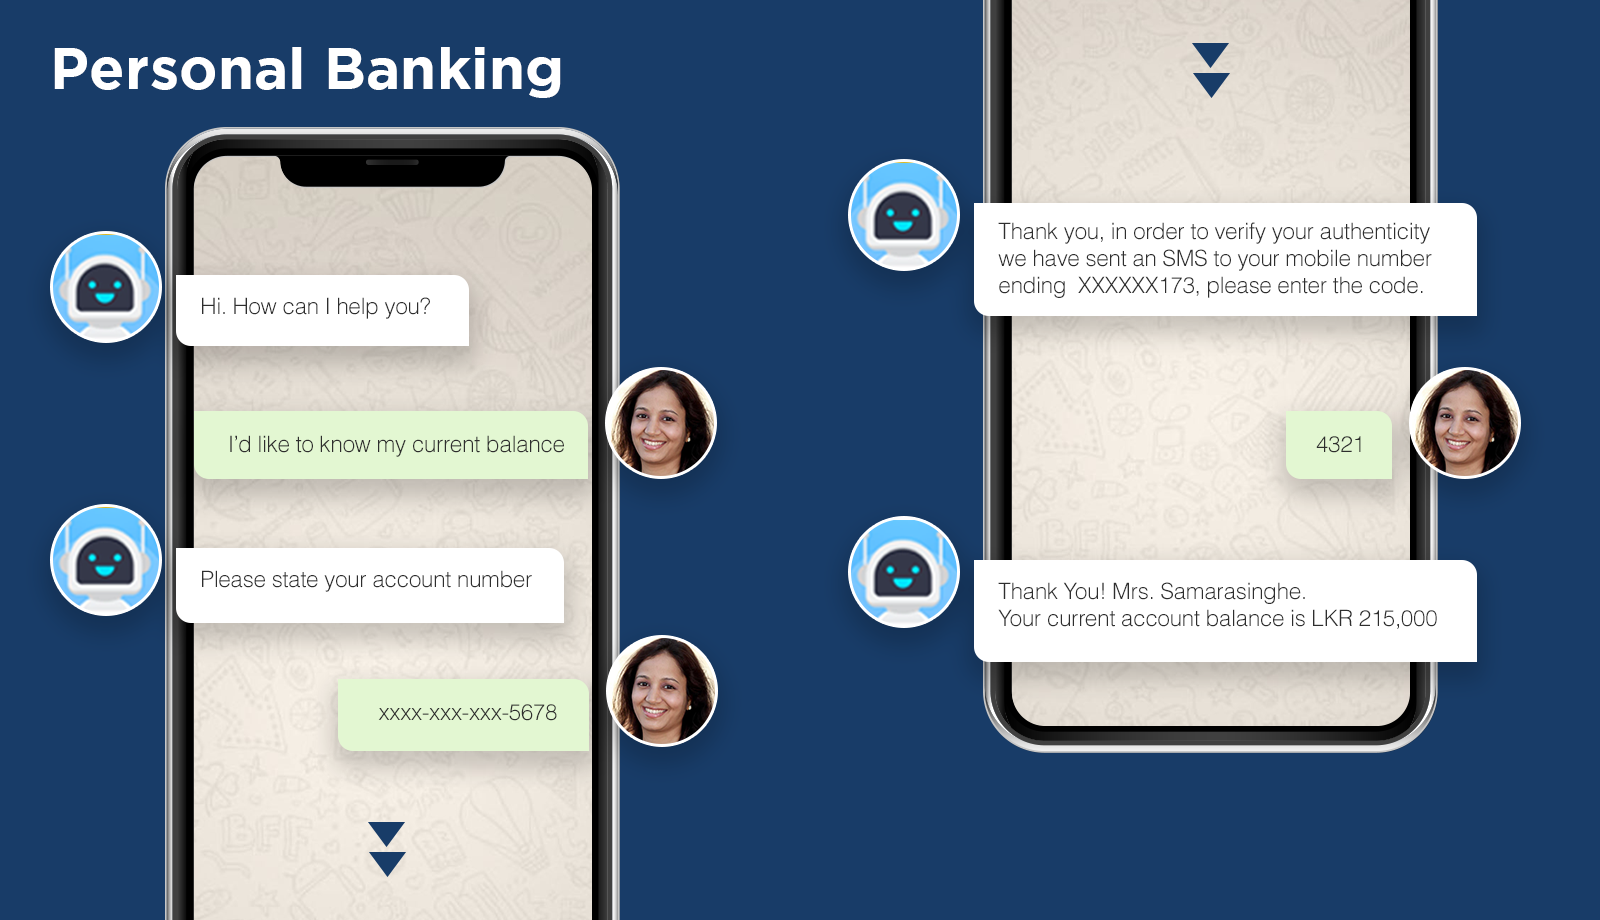 chatbot conversation on bank balance enquiry